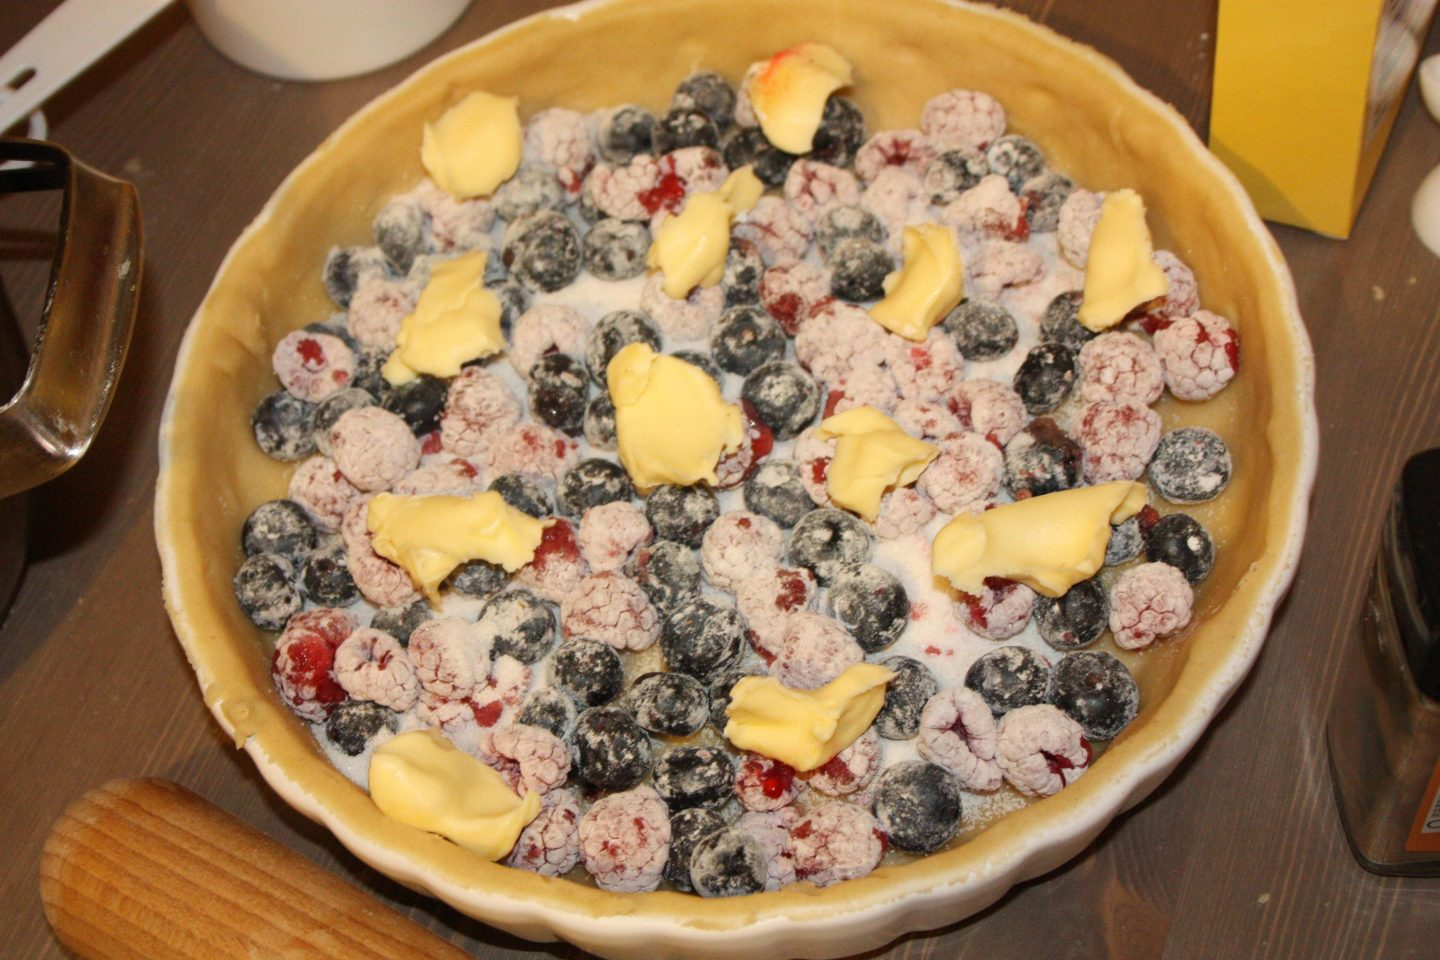 a freshly rolled pie dough in a pie dish, filled with blueberries, raspberries, butter, and sugar